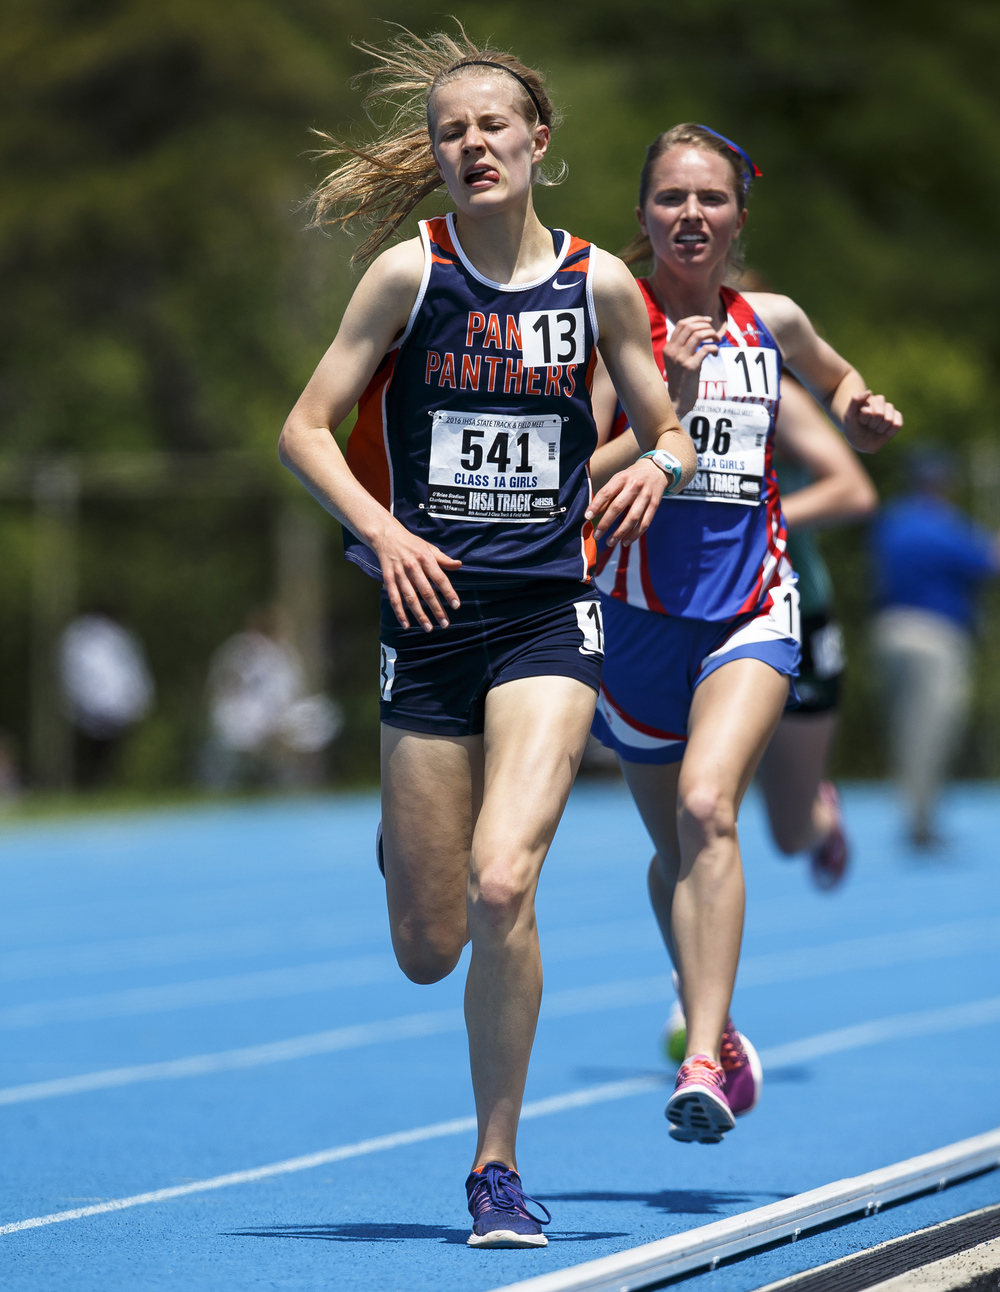 Pana's Claudia Magnussen and Carlinville's Colleen Madden fight it out on the front stretch in the closing laps of the Class 1A 3200-Meter Run during the 2016 IHSA Girls State Track and Field Meet at O'Brien Stadium, Saturday, May 21, 2016, in Charleston, Ill. Justin L. Fowler/The State Journal-Register